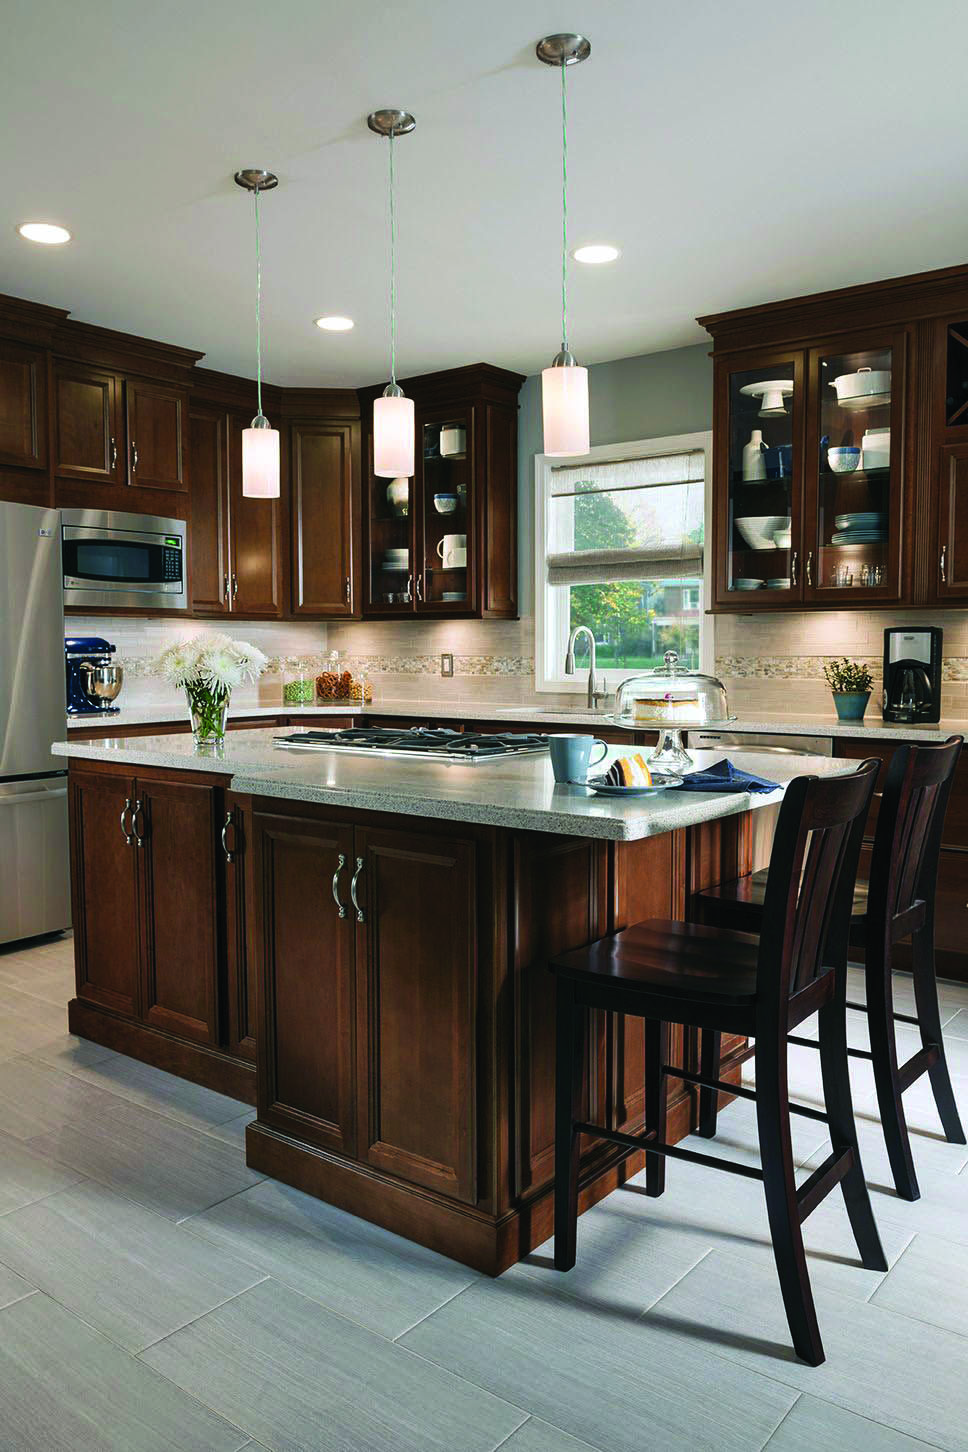 Most Popular Cherry Kitchen Cabinets With Tile Floor For 2019 Cherry Cabinets Kitchen Kitchen Renovation Tuscan Kitchen